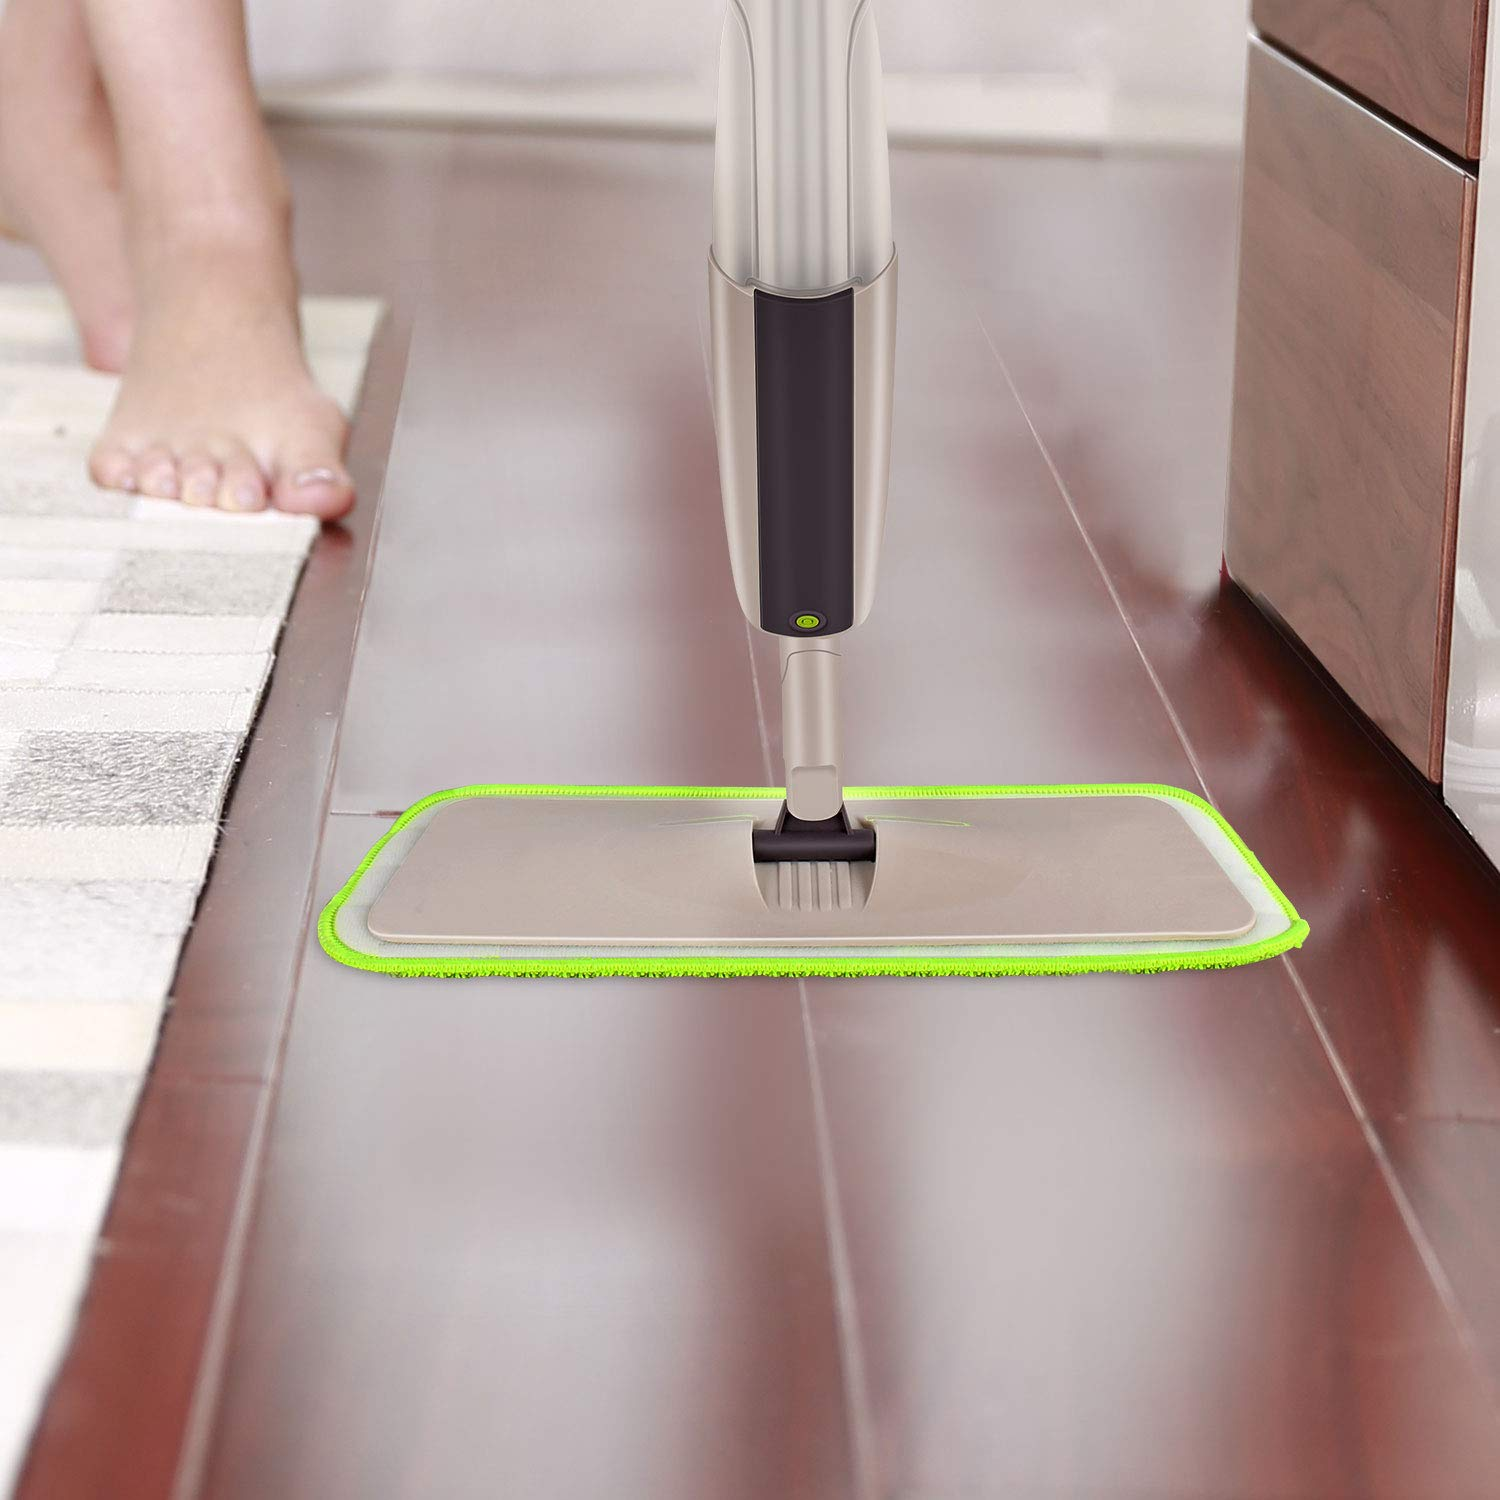 Hardwood Spray Mop for Floor Cleaning, CXhome Microfiber Mop for Tile Floors, Wet Dry Mop with Sprayer and 2 Mop Pads, 1 Refillable Bottle by CXhome (Image #4)